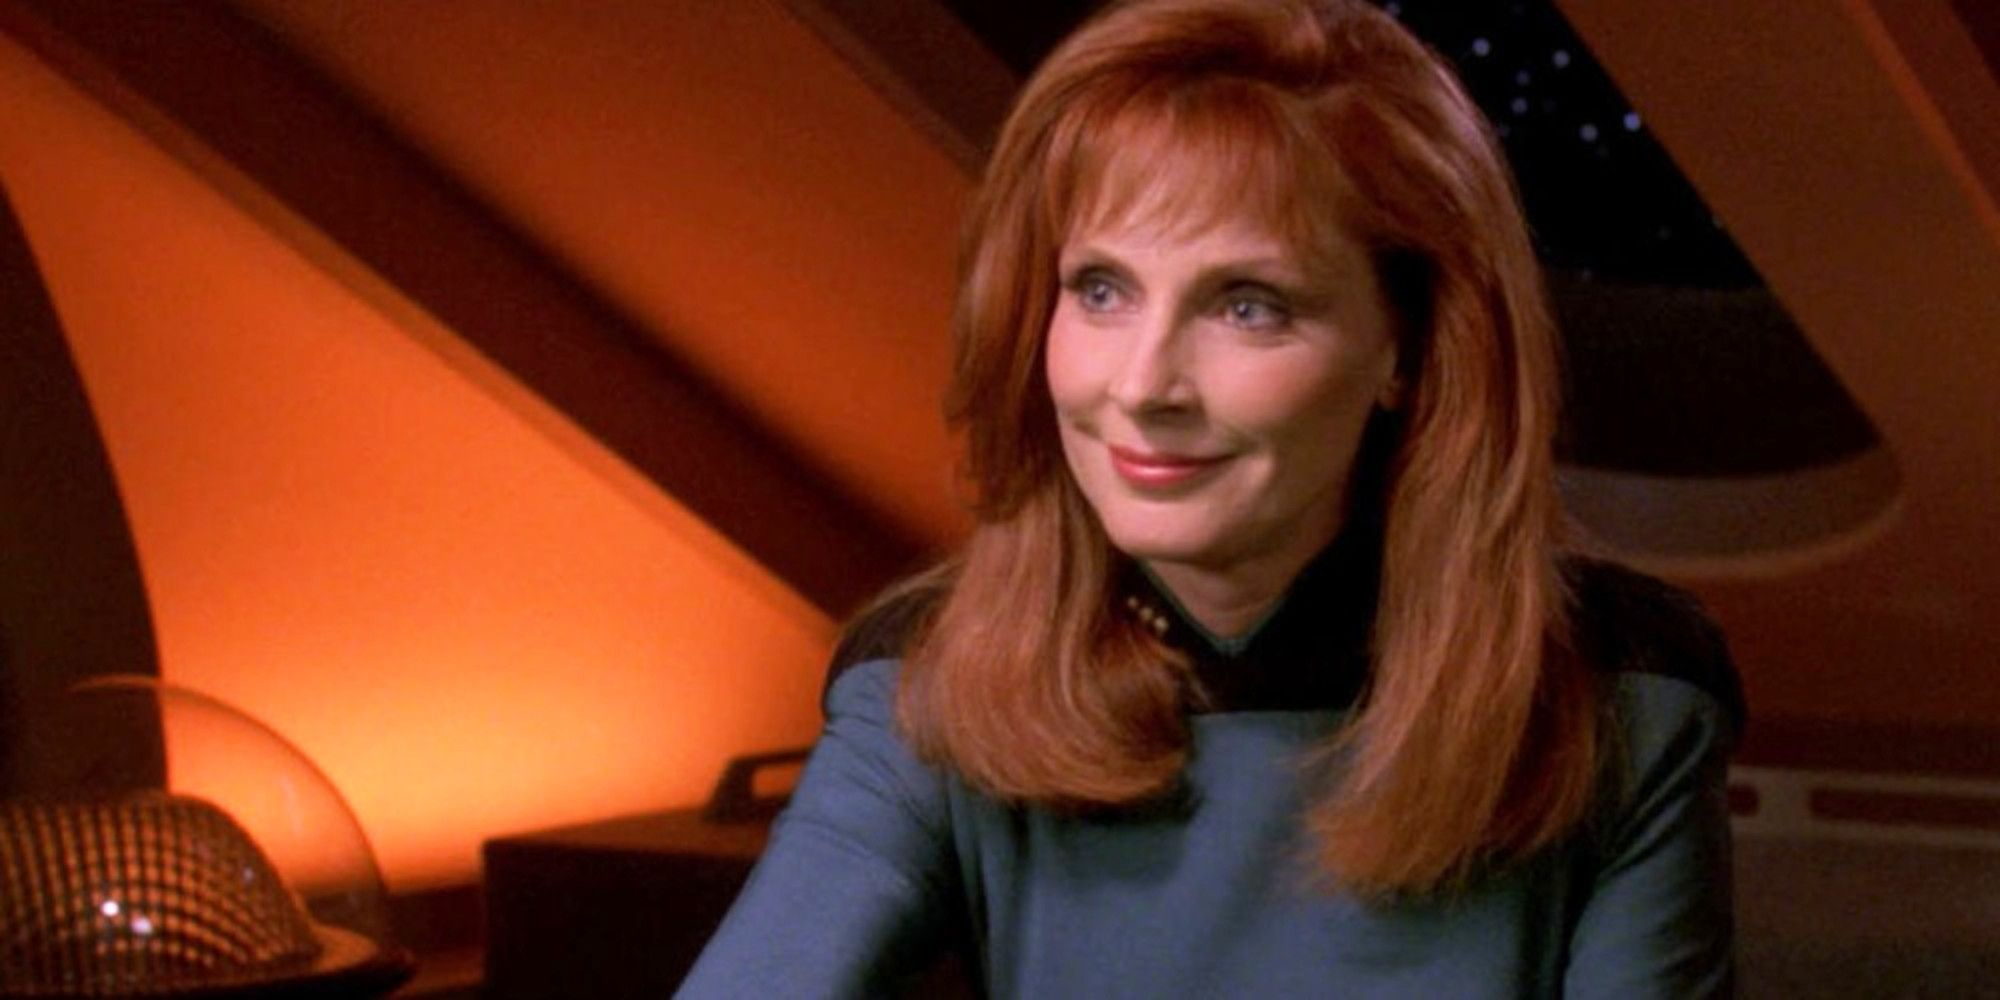 Star Trek's Gates McFadden to Host Podcast Series